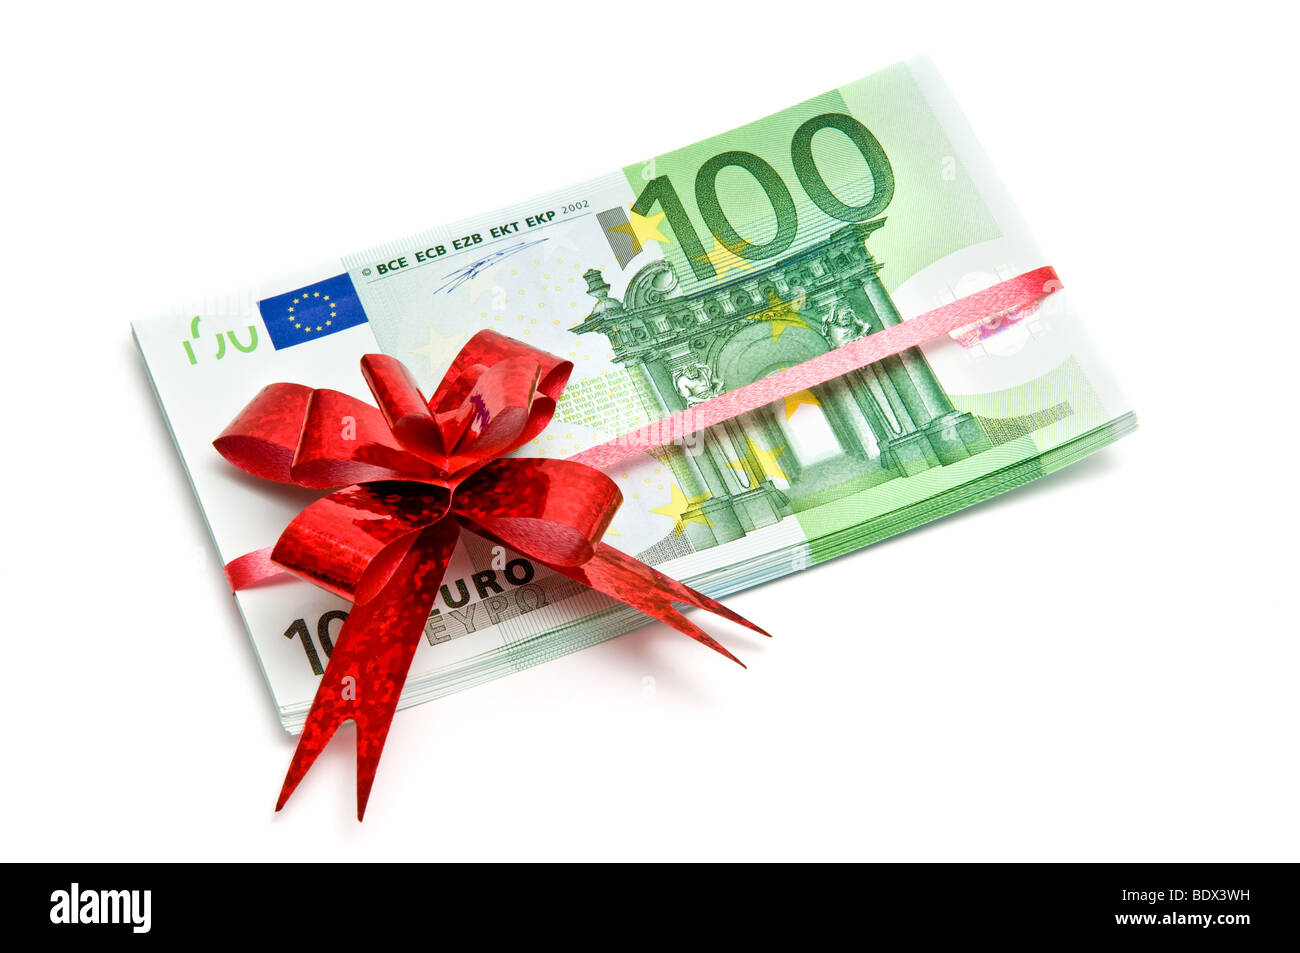 Banknotes tied red ribbon isolated on white - Stock Image